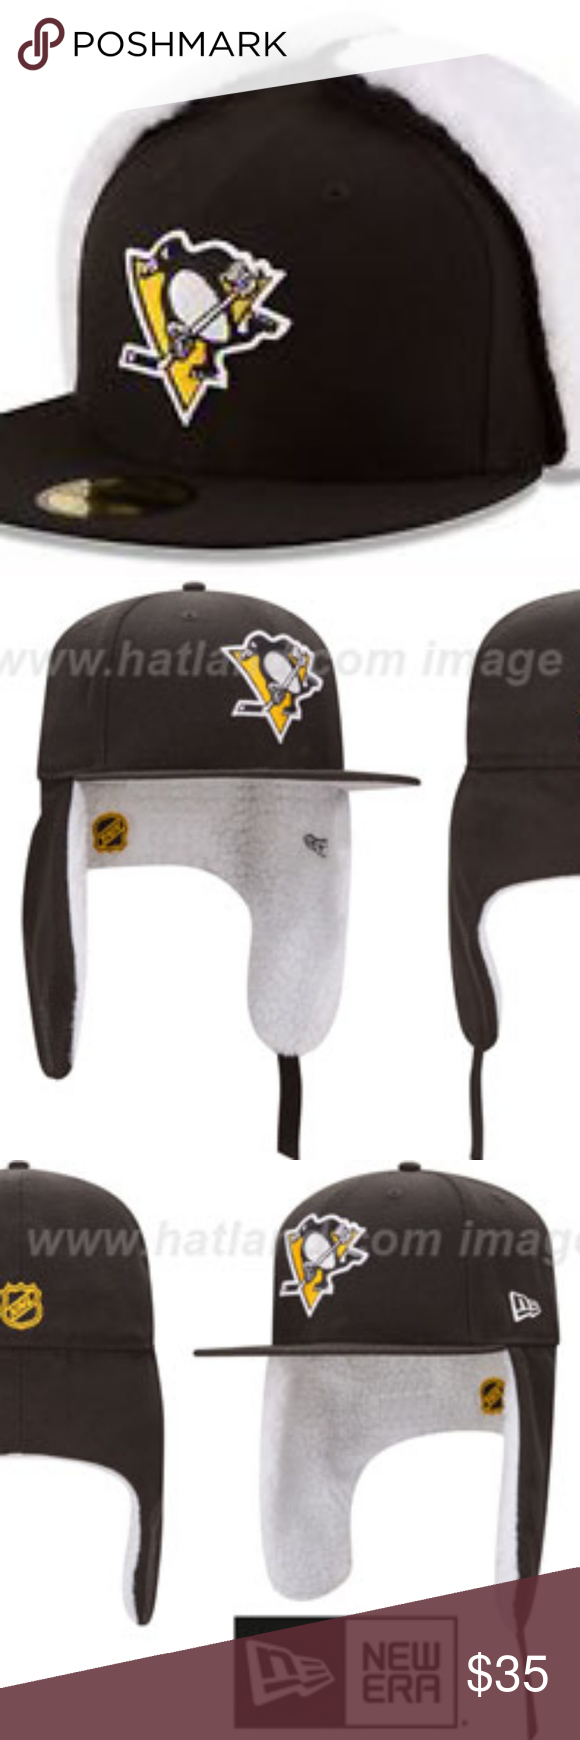 600d6db3dd7d97 New Era Pittsburgh Penguins Dogear Cap 7.5 NWT New Era 59FIFTY NHL Pittsburgh  Penguins Flurry